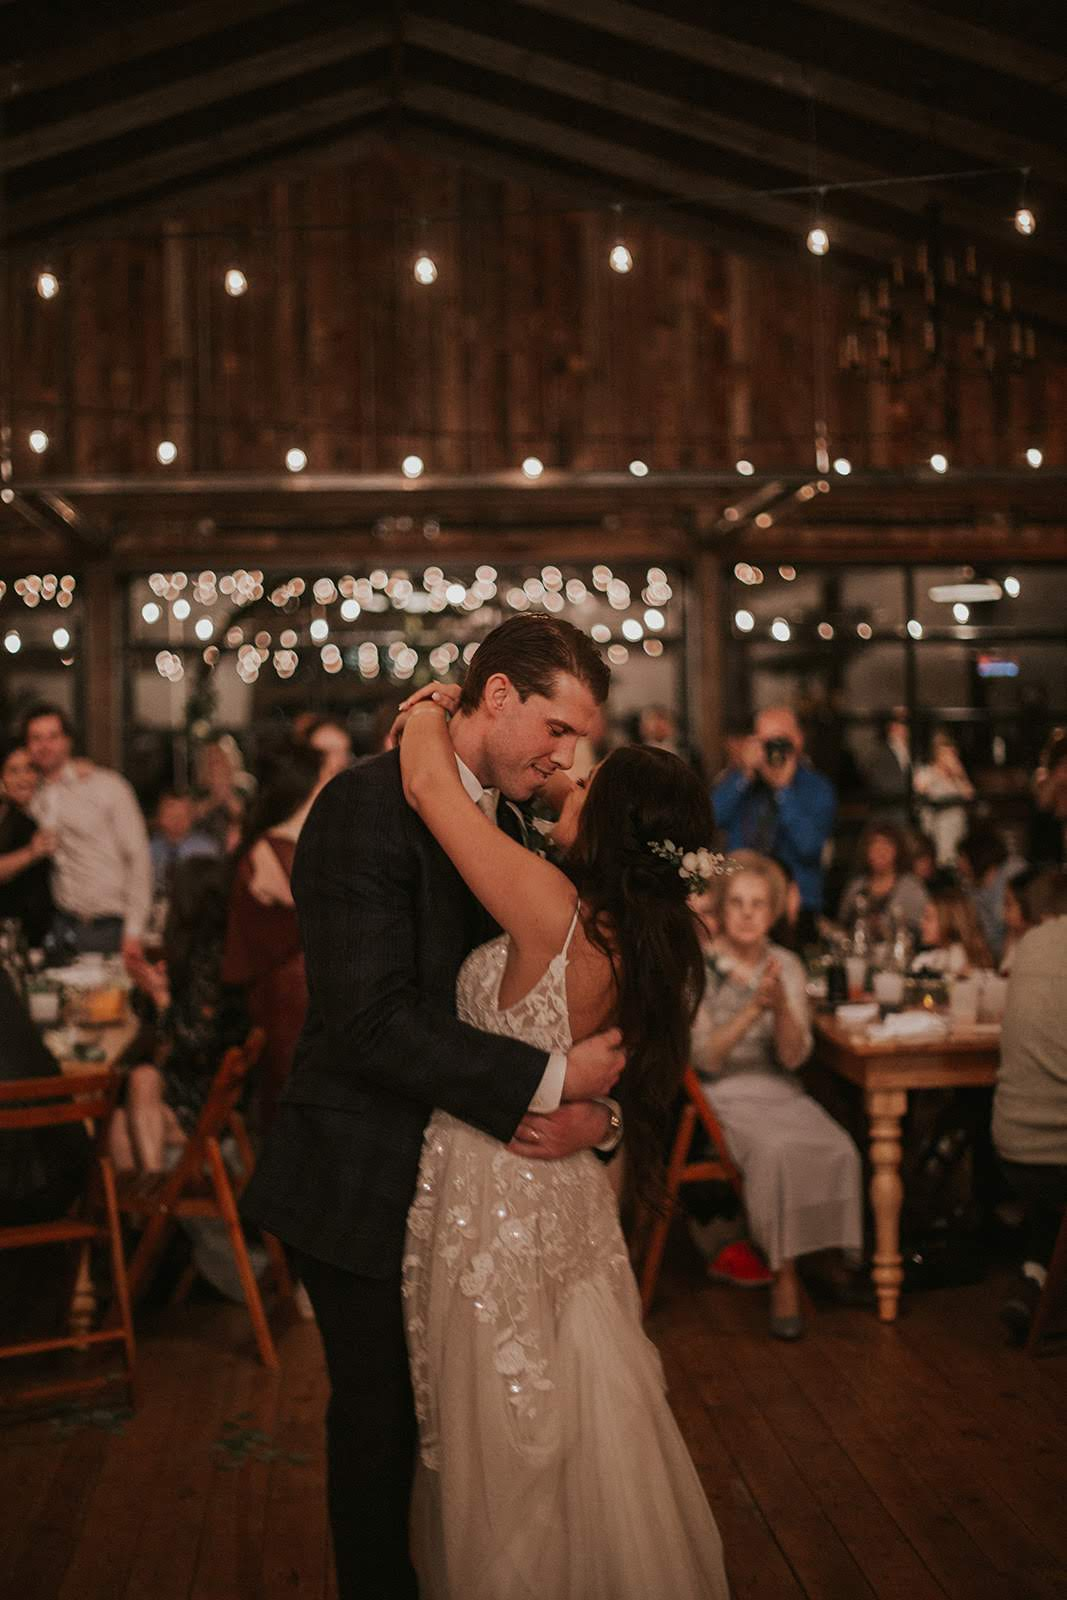 Congratulations Taylor and Jacob, keep on dancing!